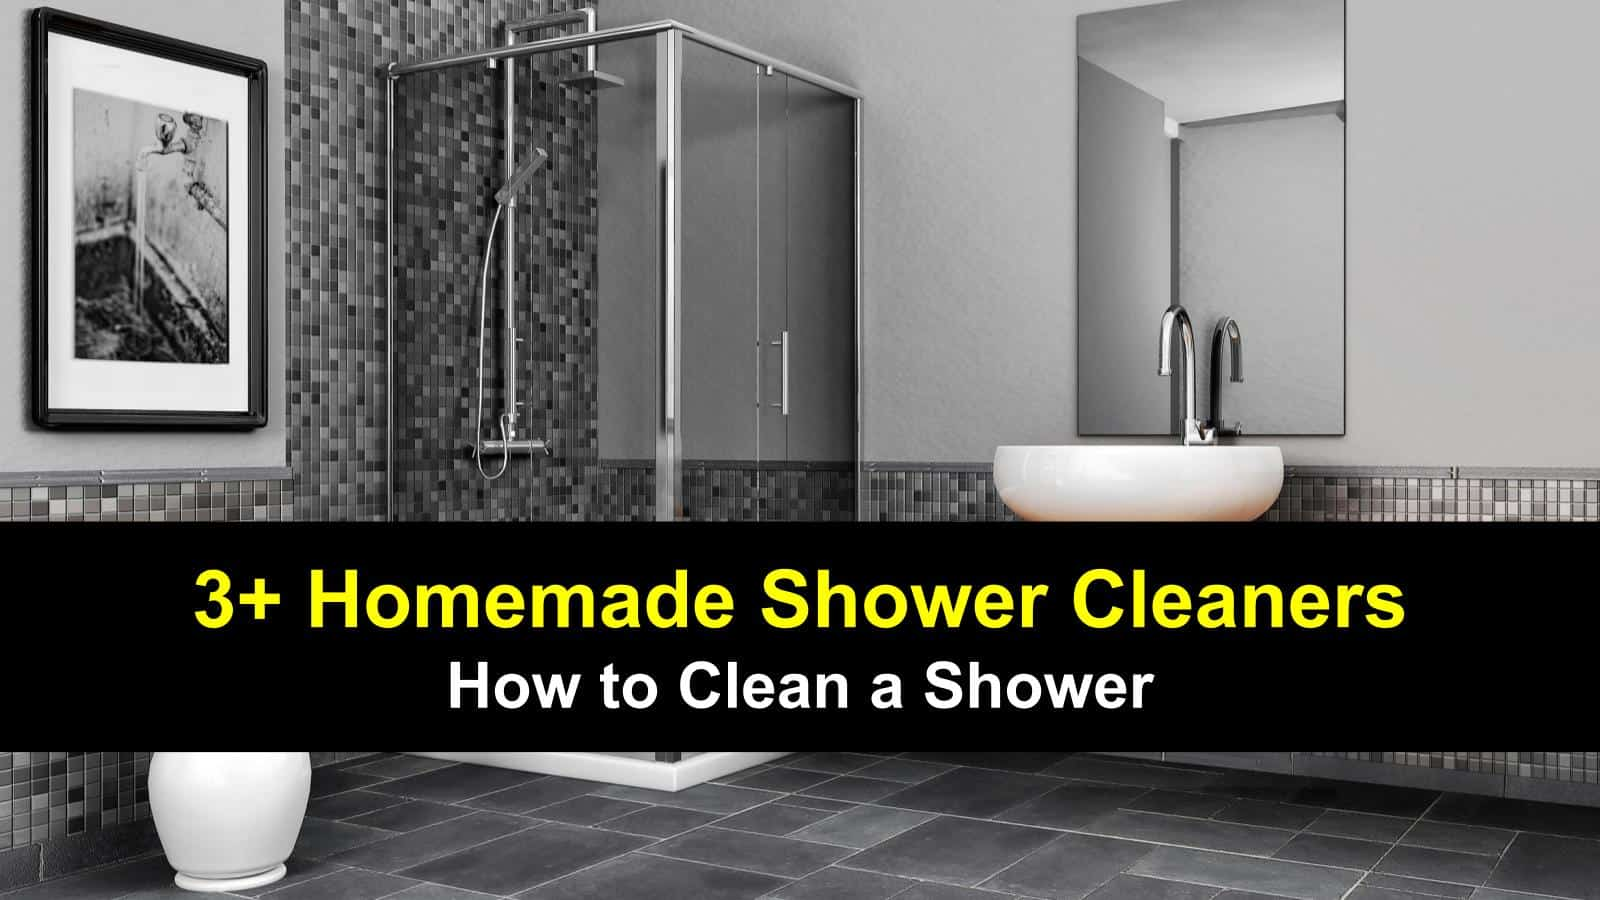 3+ Do-It-Yourself Shower Cleaner Recipes